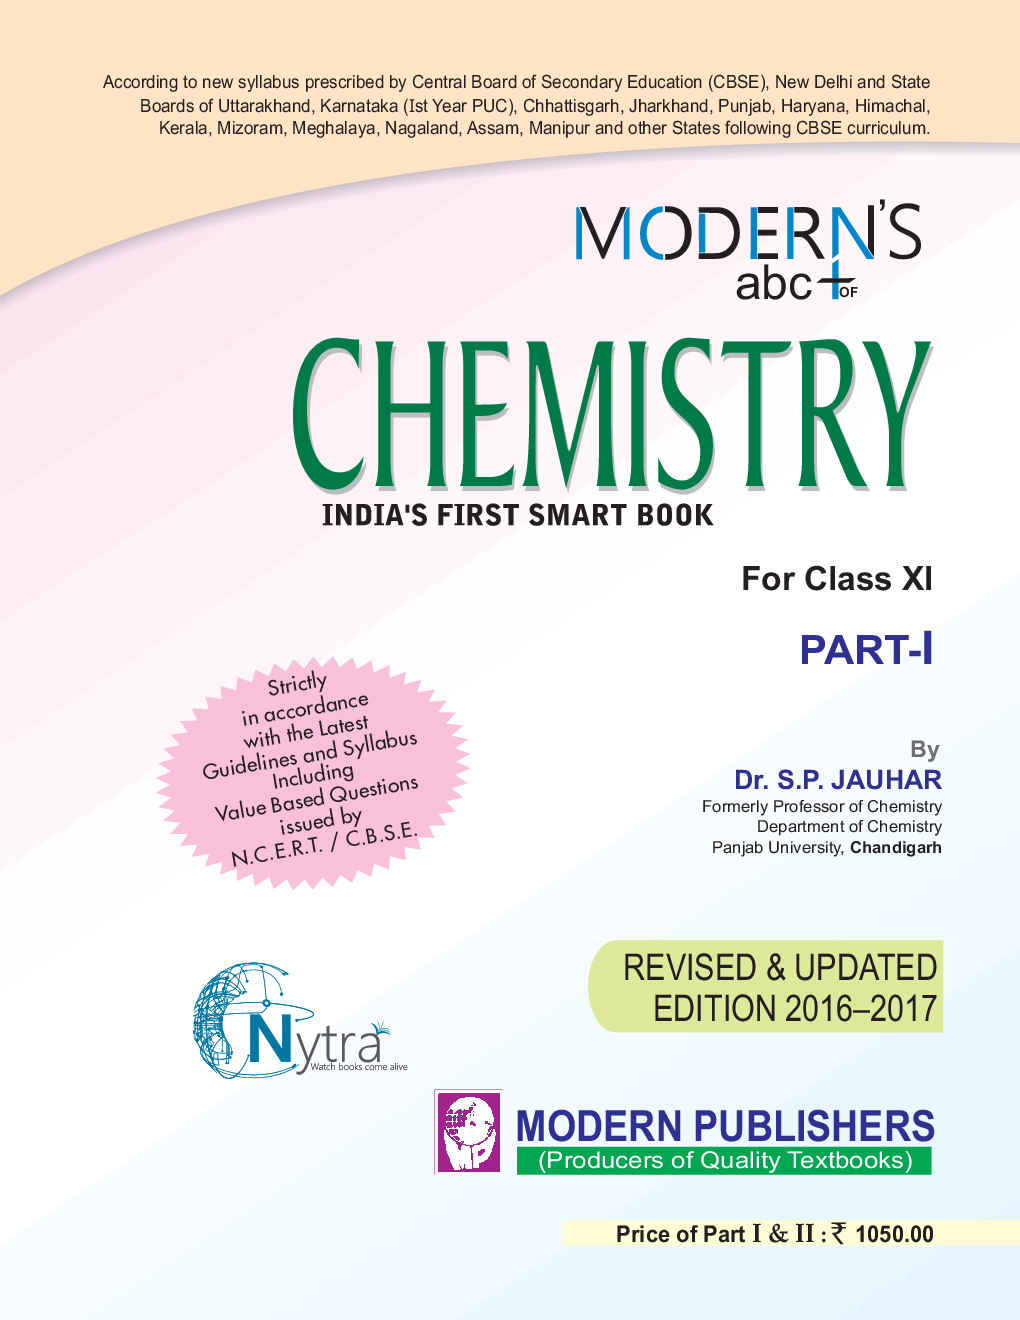 download modern abc plus of chemistry class 11 part i by dr s p